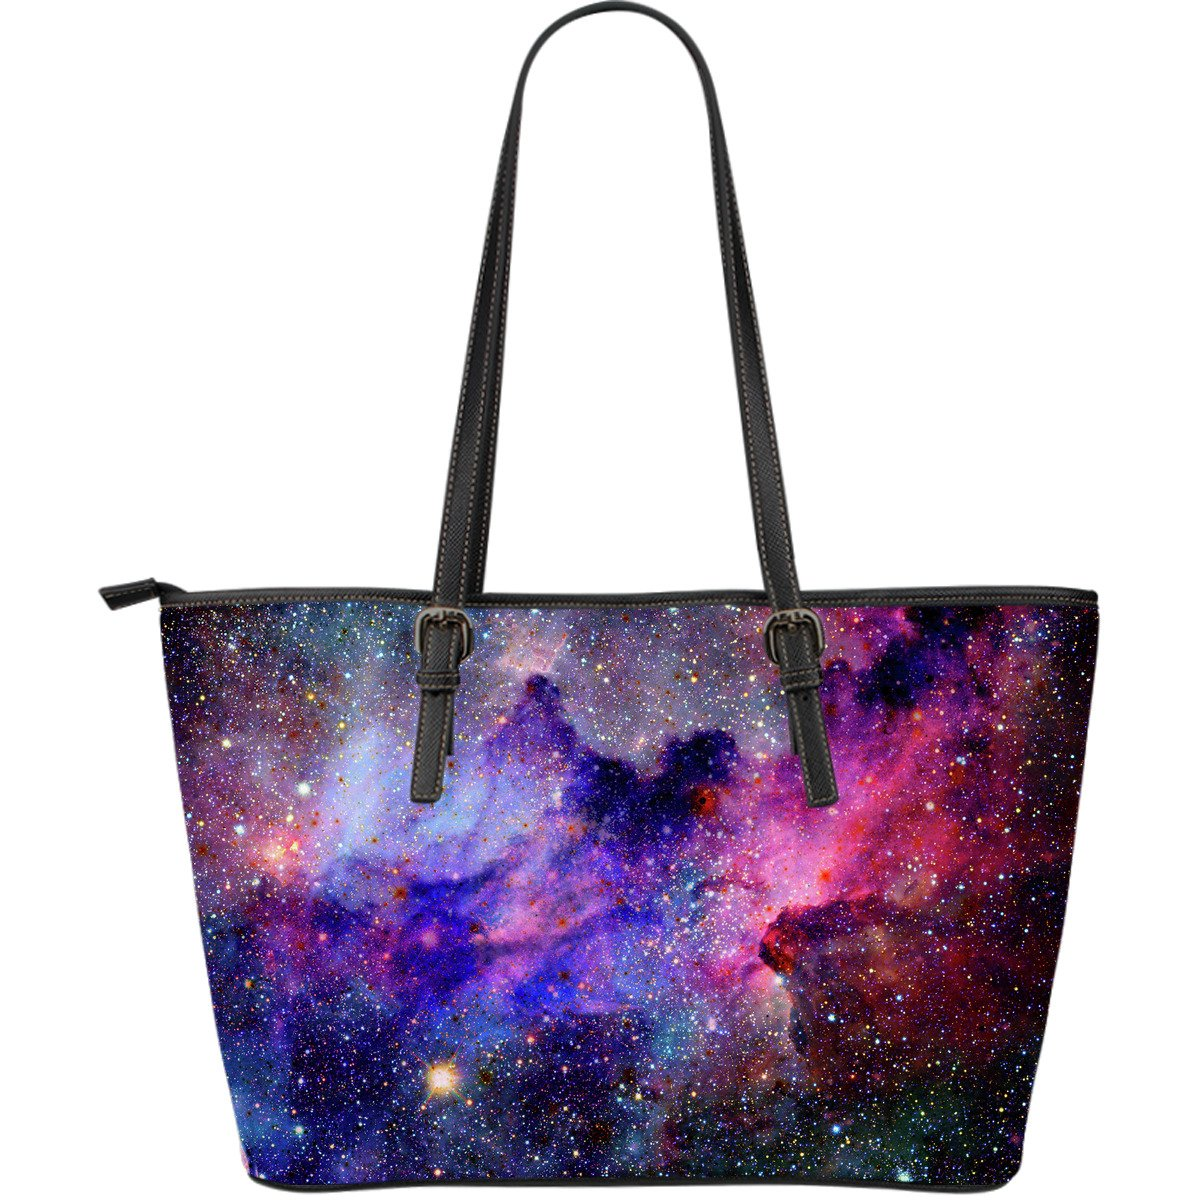 Colorful Nebula Galaxy Space Print Leather Tote Bag GearFrost